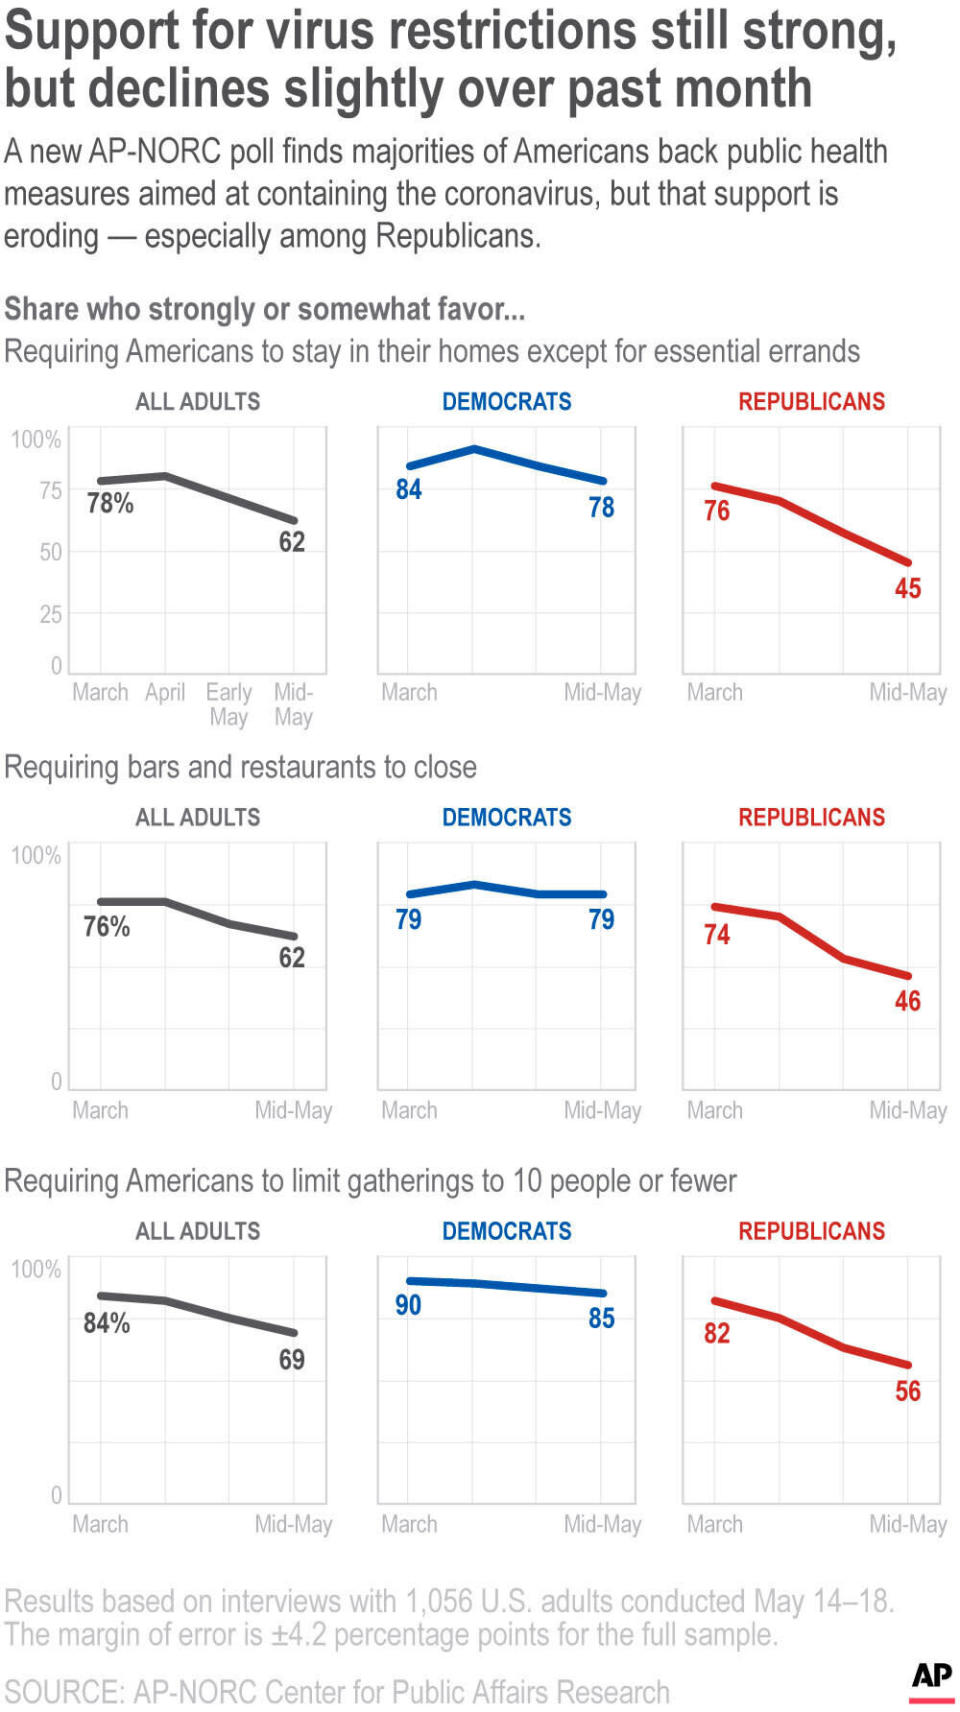 A new AP-NORC poll finds majorities of Americans back public health measures aimed at containing the coronavirus, but that support is eroding — especially among Republicans.